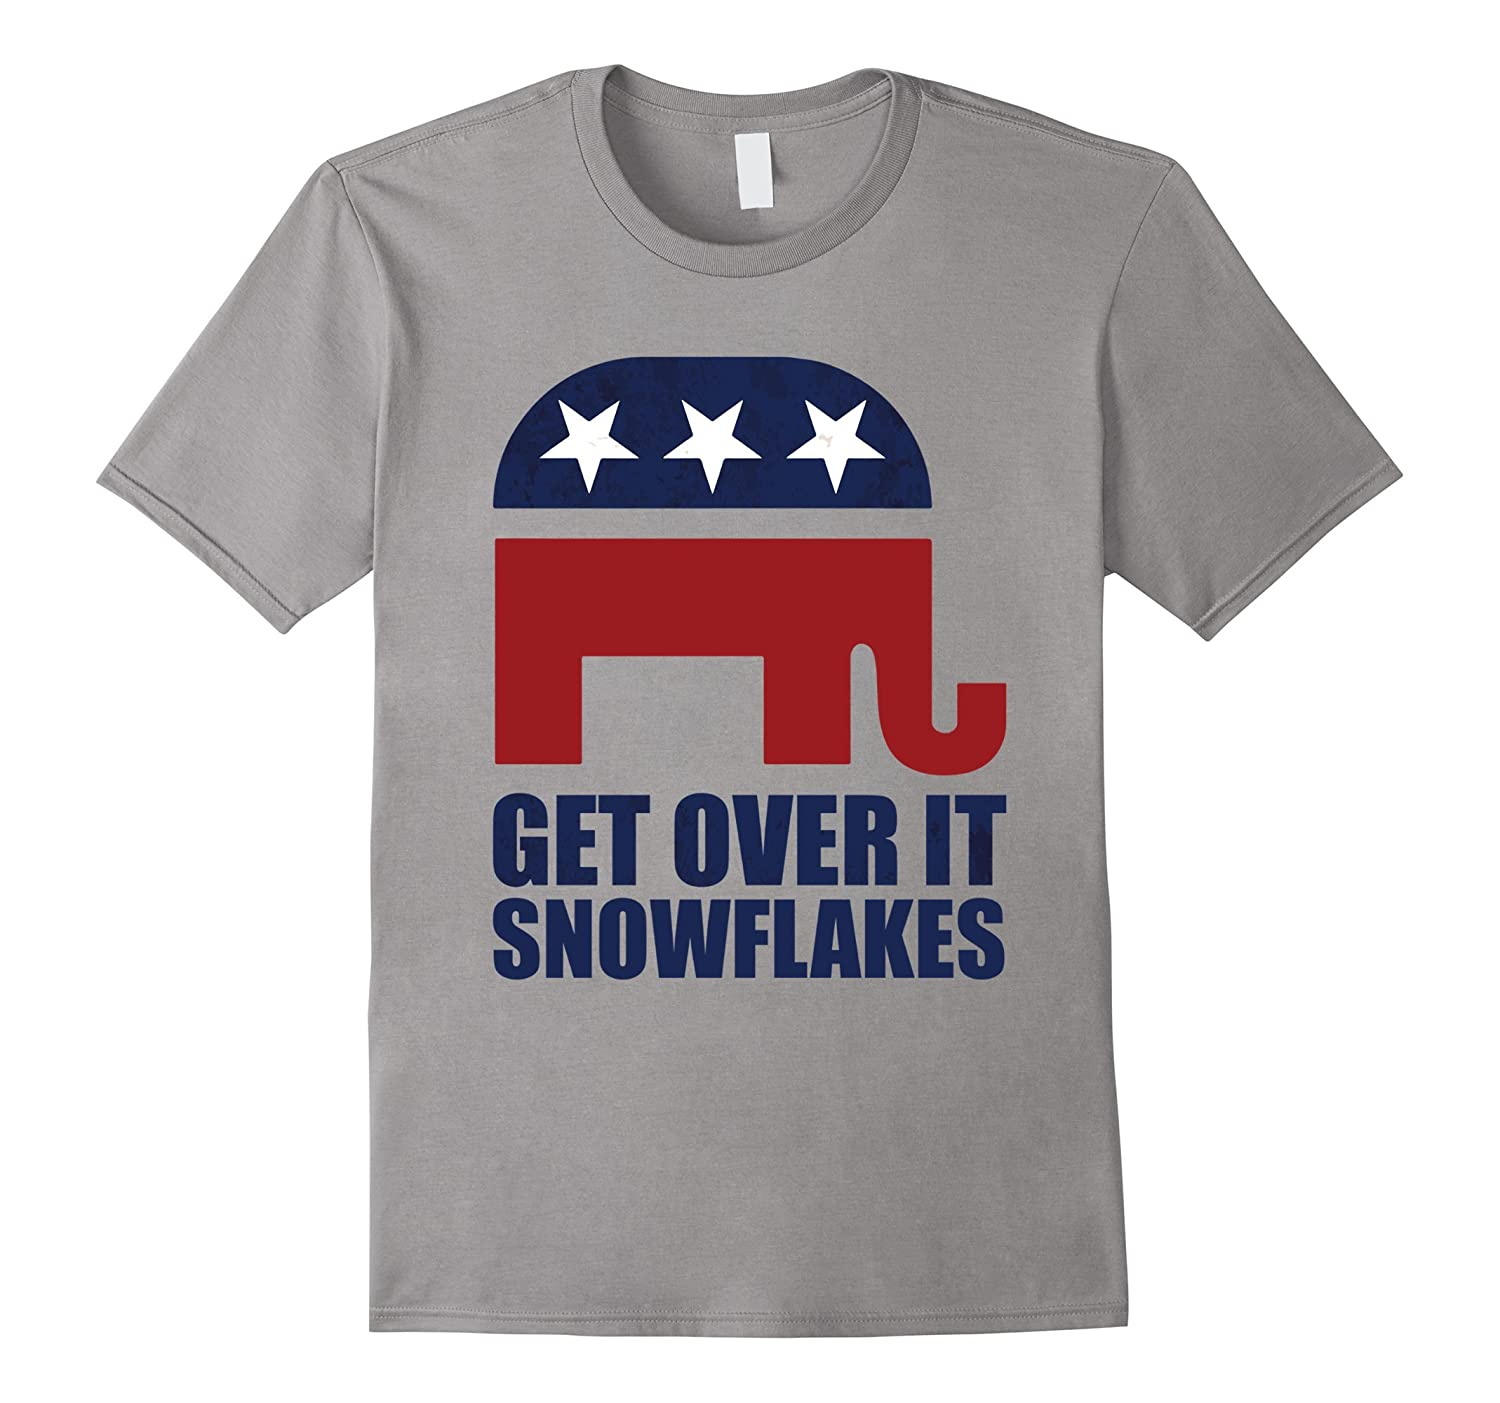 Get Over It Snowflakes 2016 Republican Trump Victory T-Shirt-CD